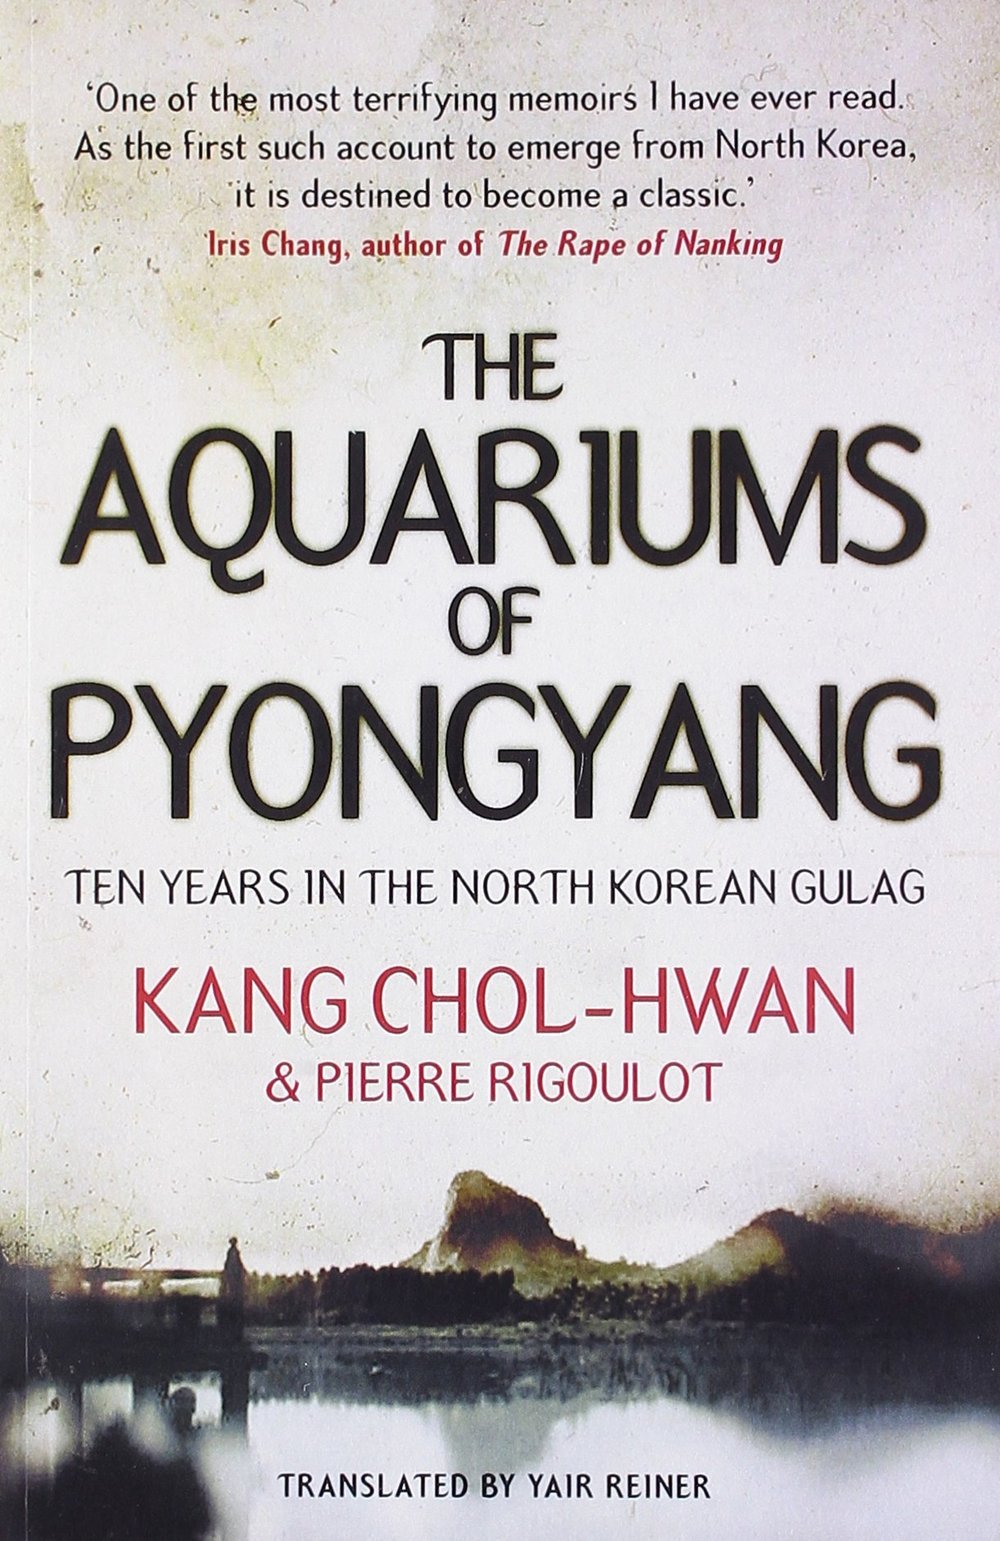 The Aquariums of Pyongyang - Kang Chol-Hwan writes about the hardship of life in North Korea. This account documents political control, executions, starvation and his escape to South Korea.